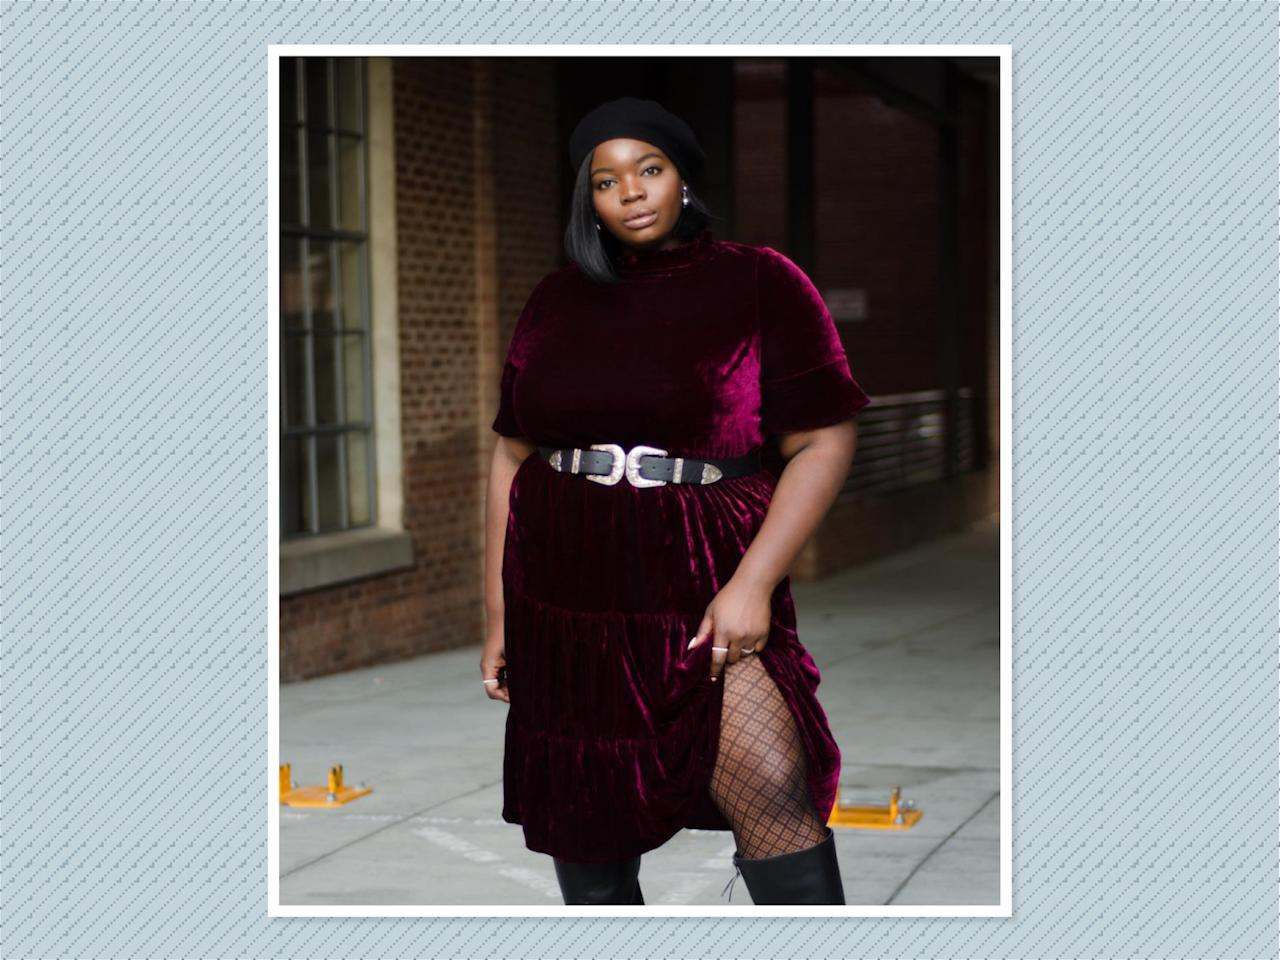 """<p>A velour dress is a classic fall essential. <a rel=""""nofollow"""" href=""""https://www.instagram.com/p/BZy3wEqFuwe/?hl=en&taken-by=onacurve"""">Valerie Eguavoen</a> styles it perfectly by belting it at the waist and pairing with fishnet tights to add texture. (Photo: Valerie Eguavoen) </p>"""